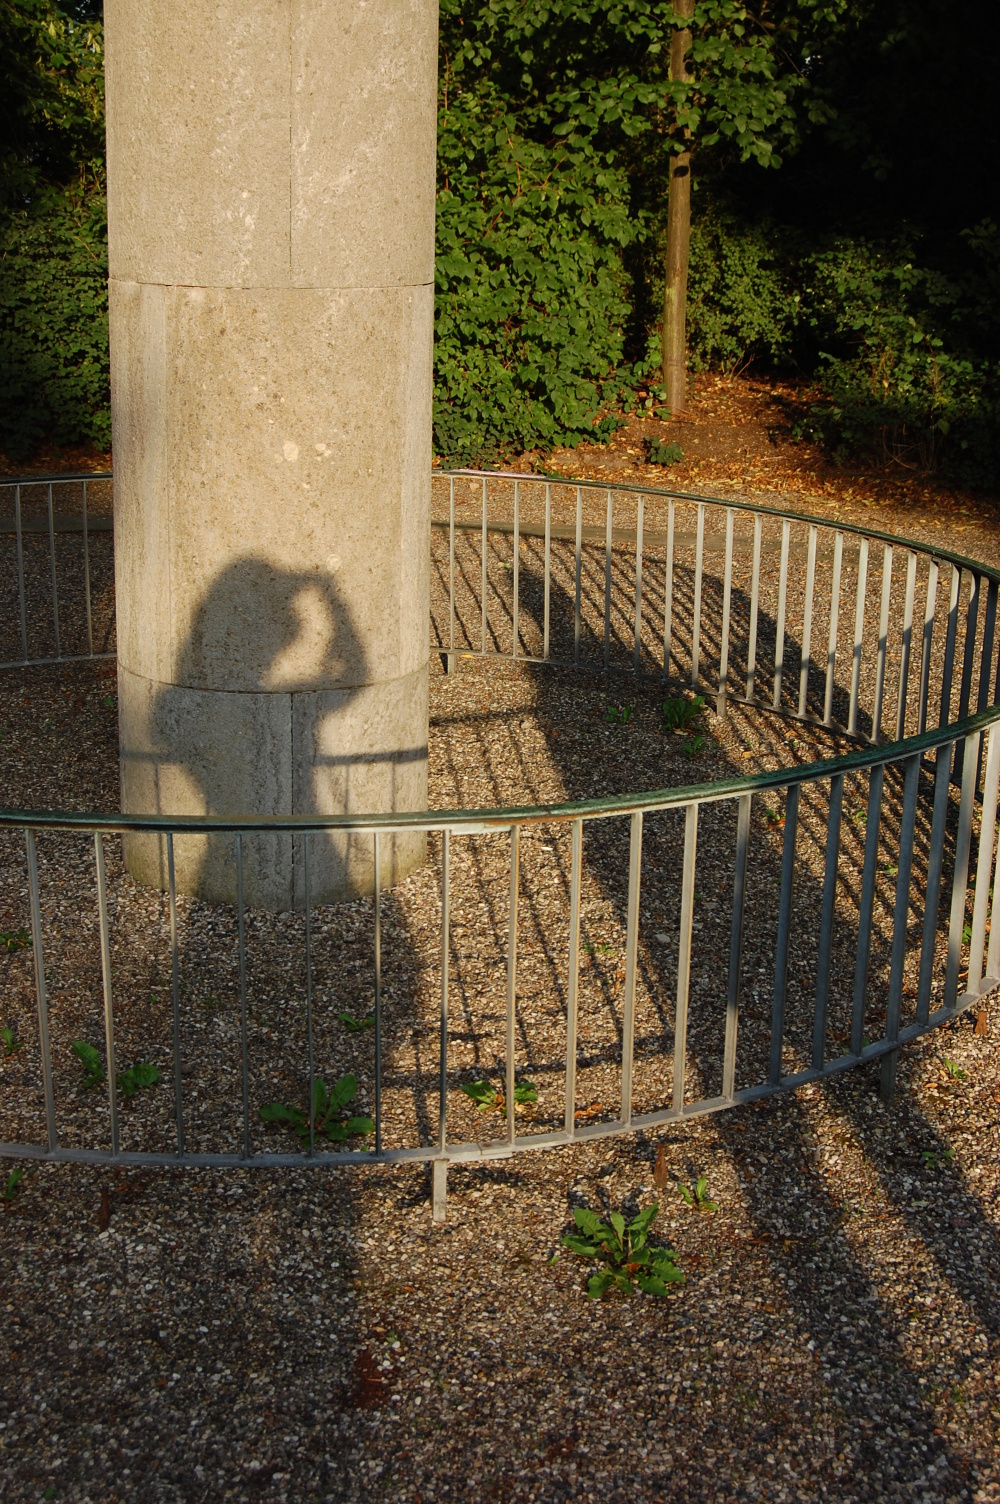 Shadow of a man and a woman on a pillar